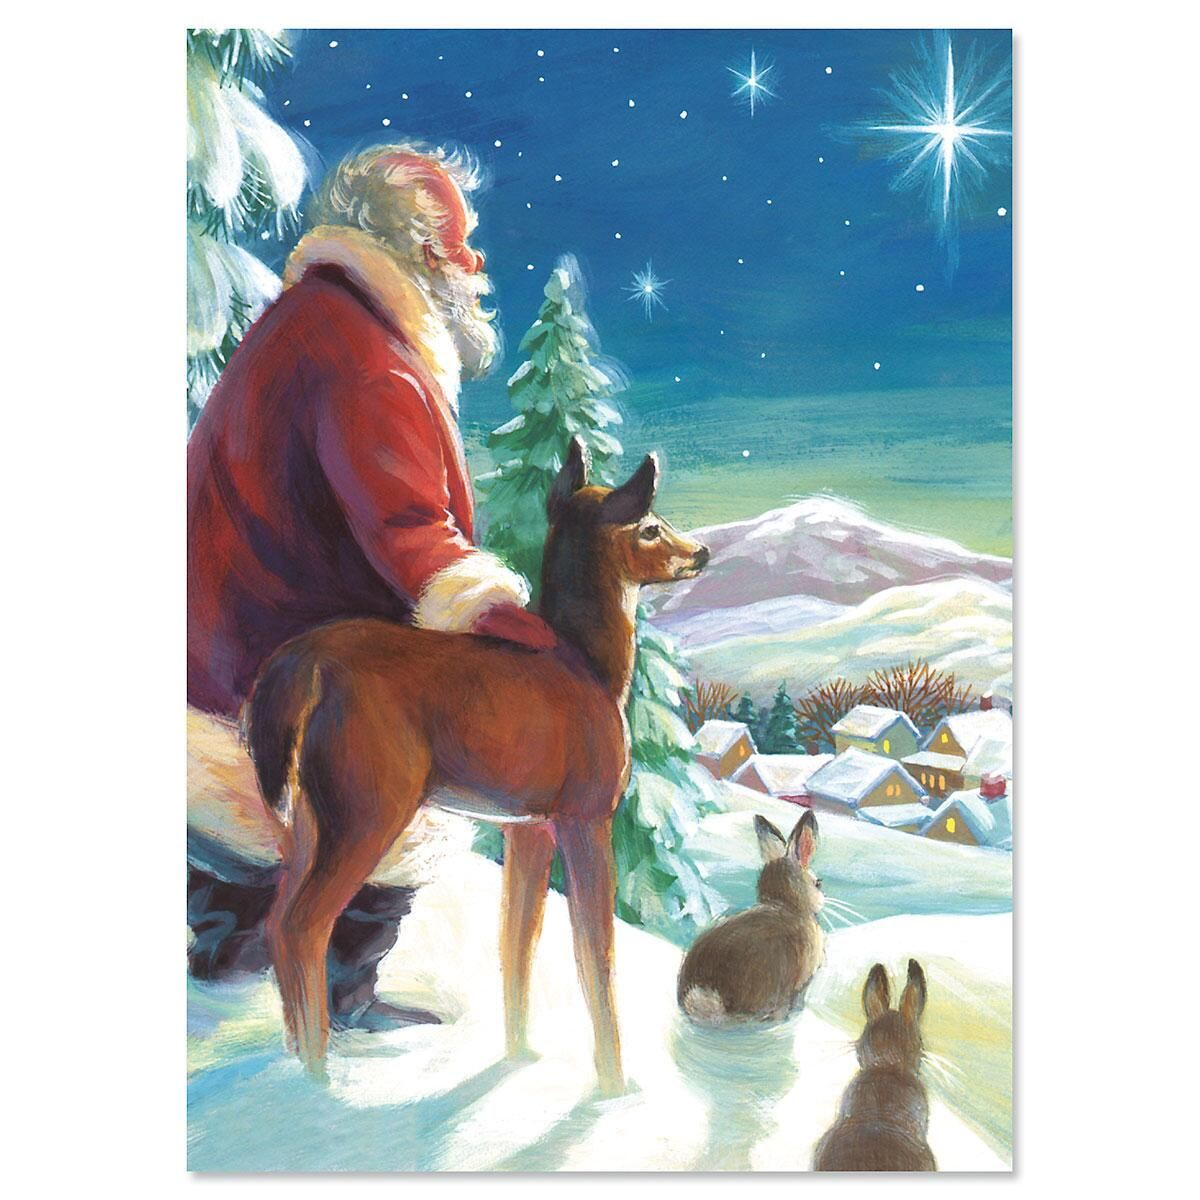 Santa and Star Personalized Christmas Cards - Set of 72